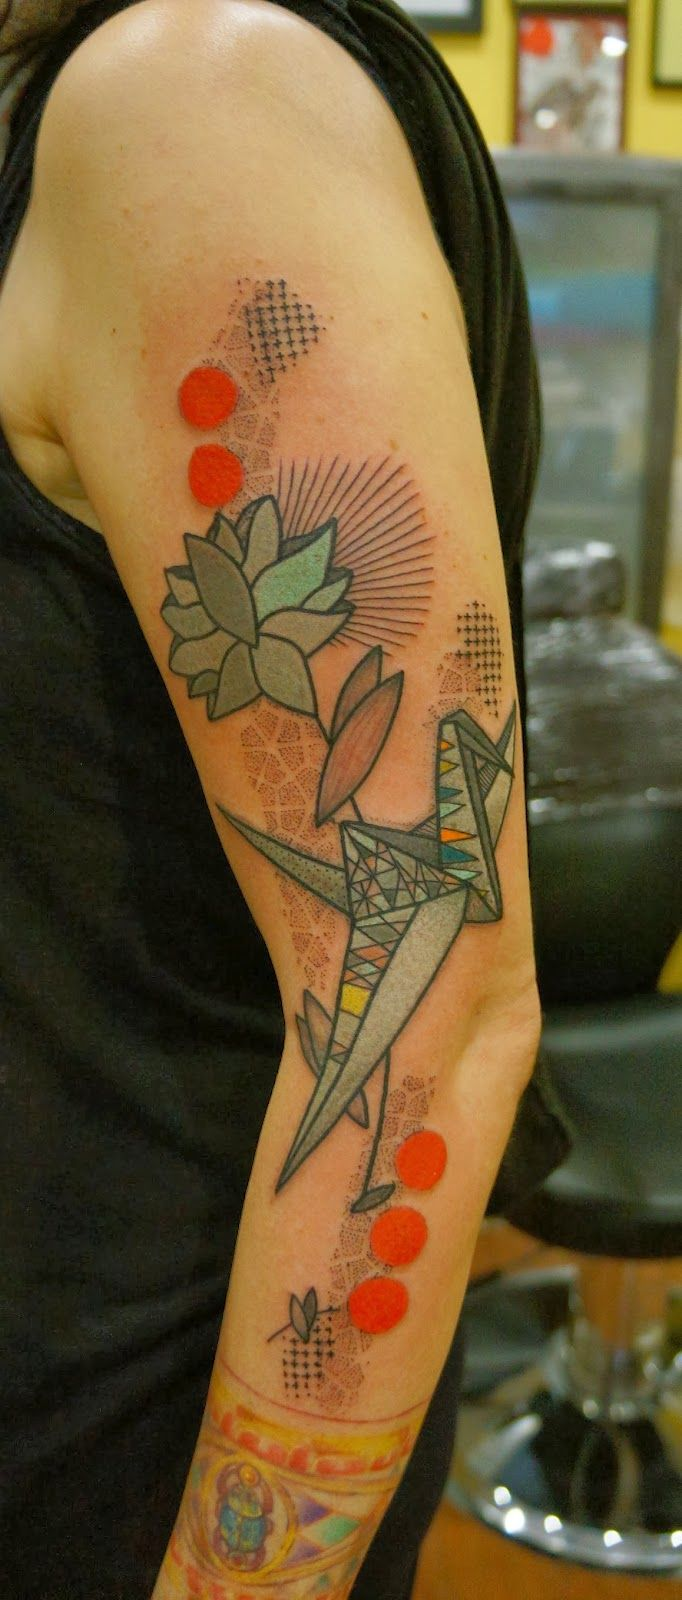 161 best Tattoos images on Pinterest | Body jewelry, Cool tattoos ...